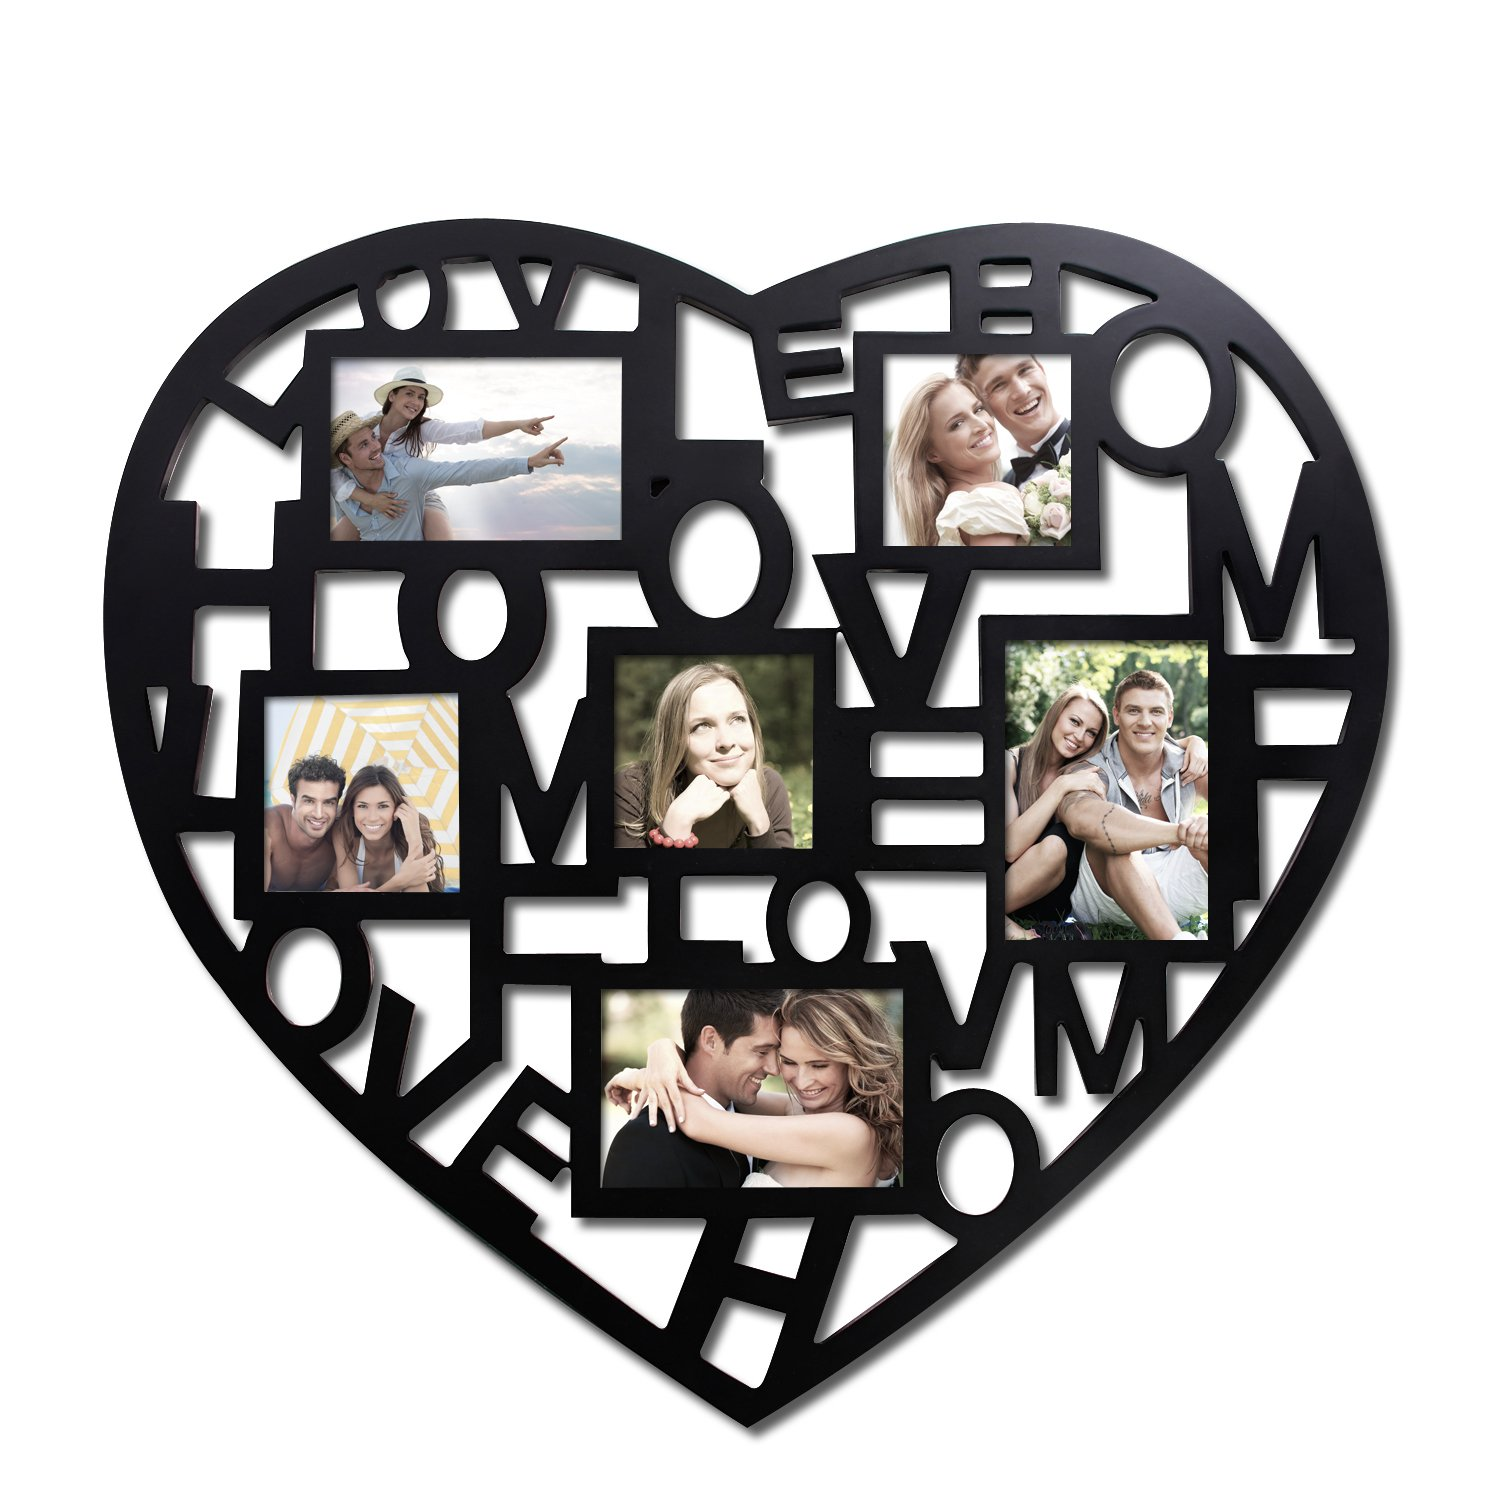 adeco pf0243 6opening black wooden wall hanging collage photo picture frames stylish heart shape amazoncouk kitchen u0026 home